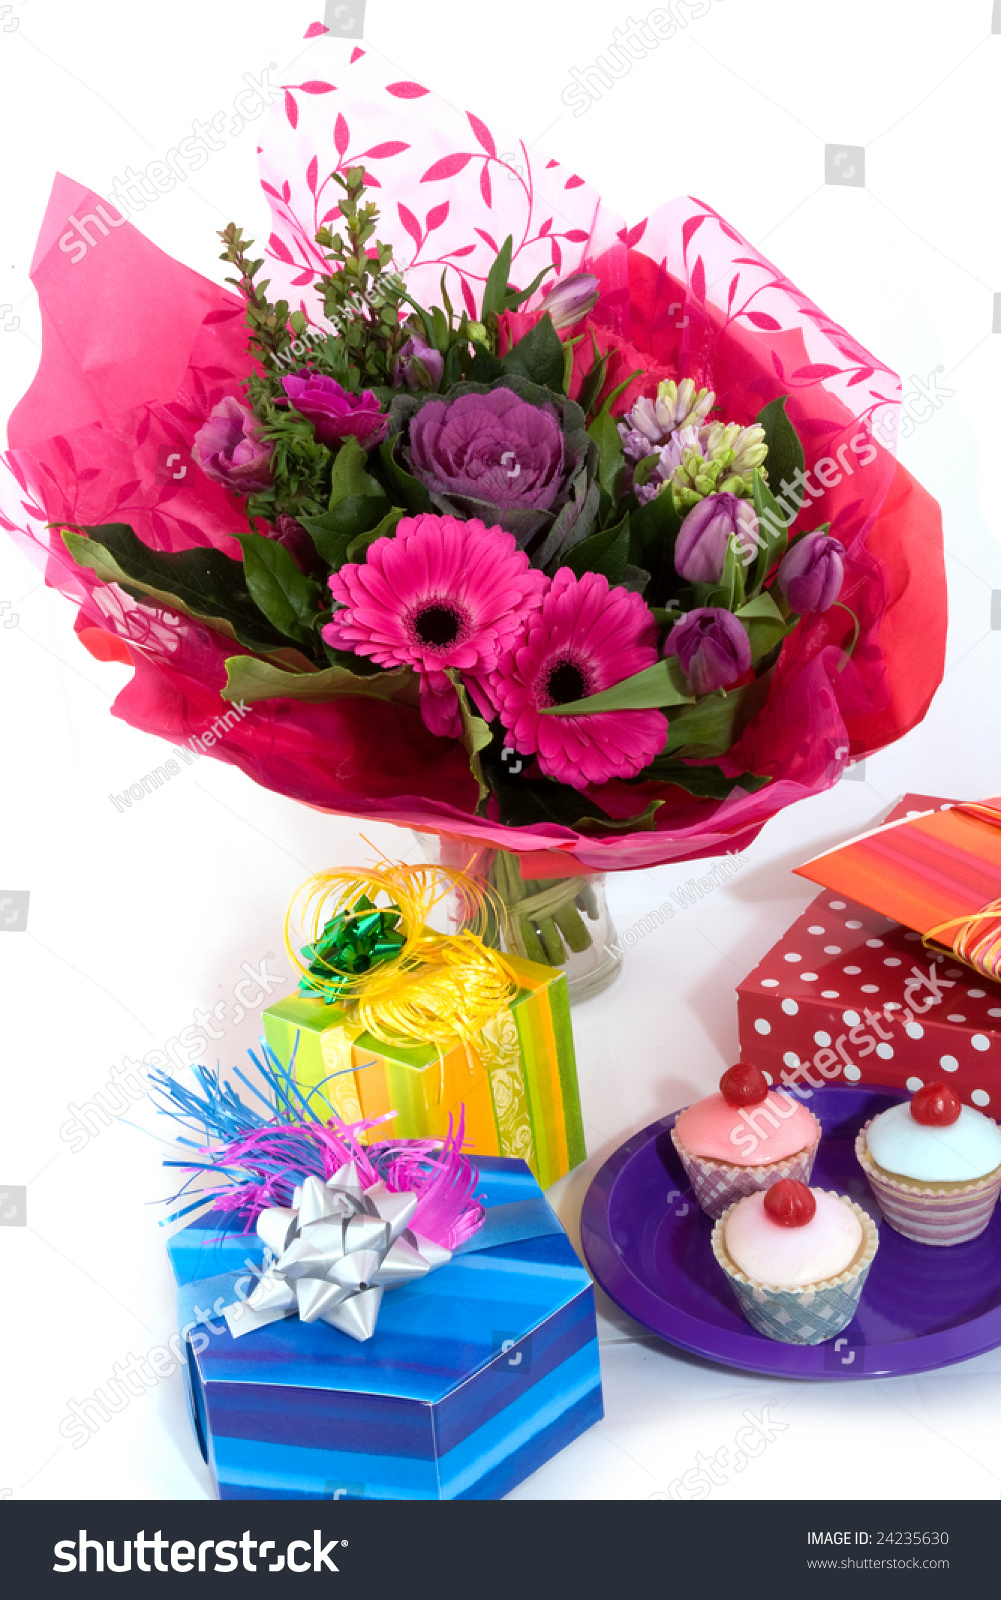 Happy birthday flowers fancy cakes presents stock photo edit now happy birthday with flowers fancy cakes and presents izmirmasajfo